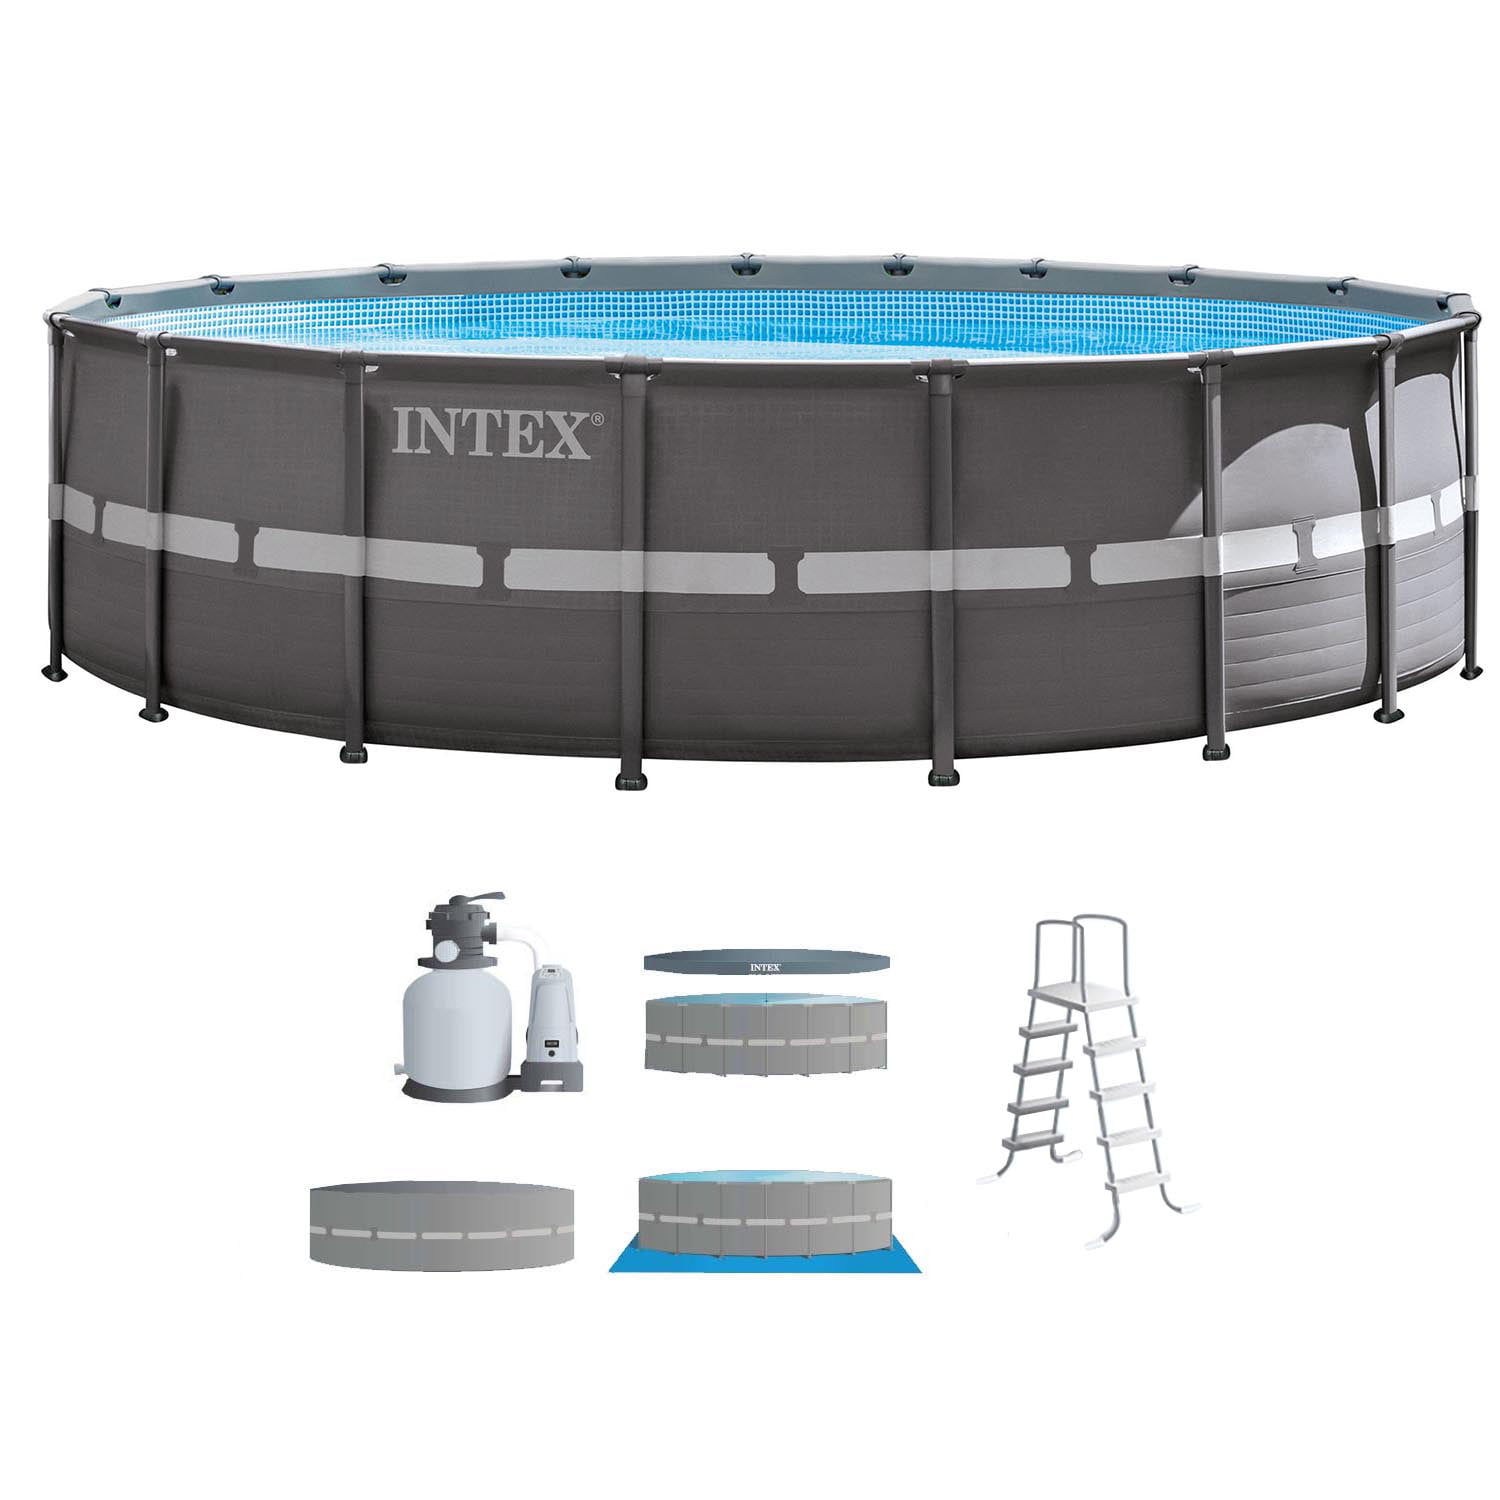 "Intex 18' x 52"" Ultra Frame Above Ground Swimming Pool Set with Sand Filter Pump by Intex"